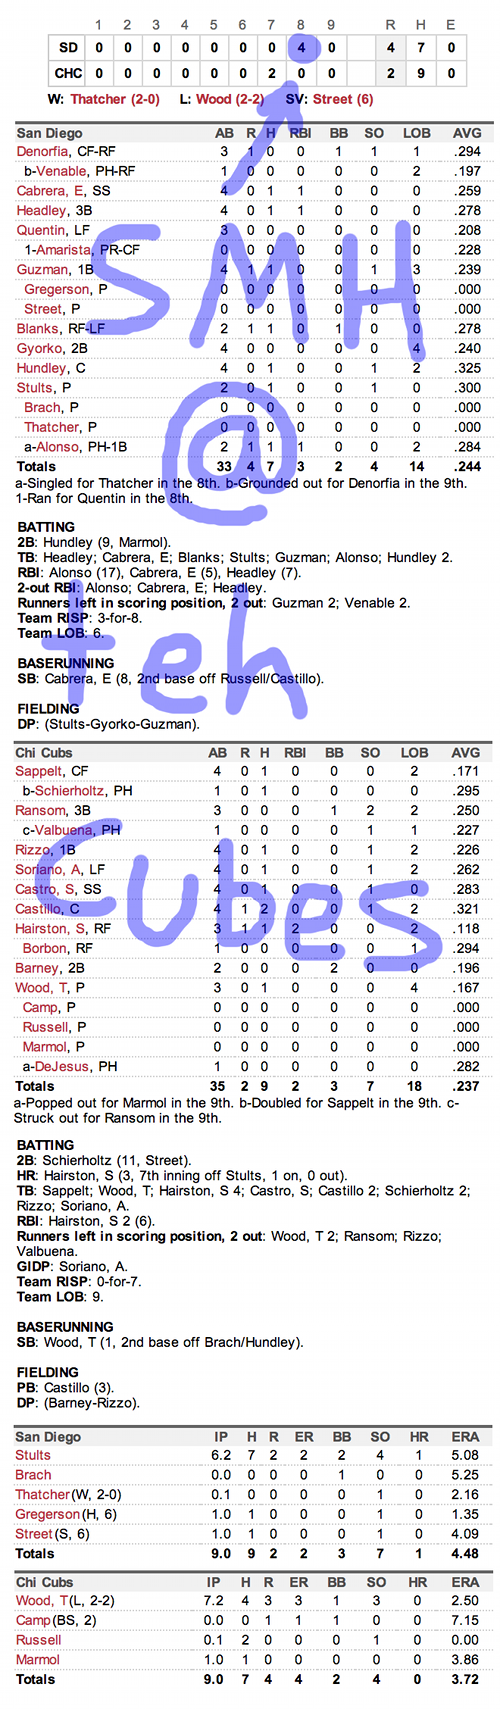 Enhanced Box Score: Padres 4, Cubs 2 – May 2, 2013